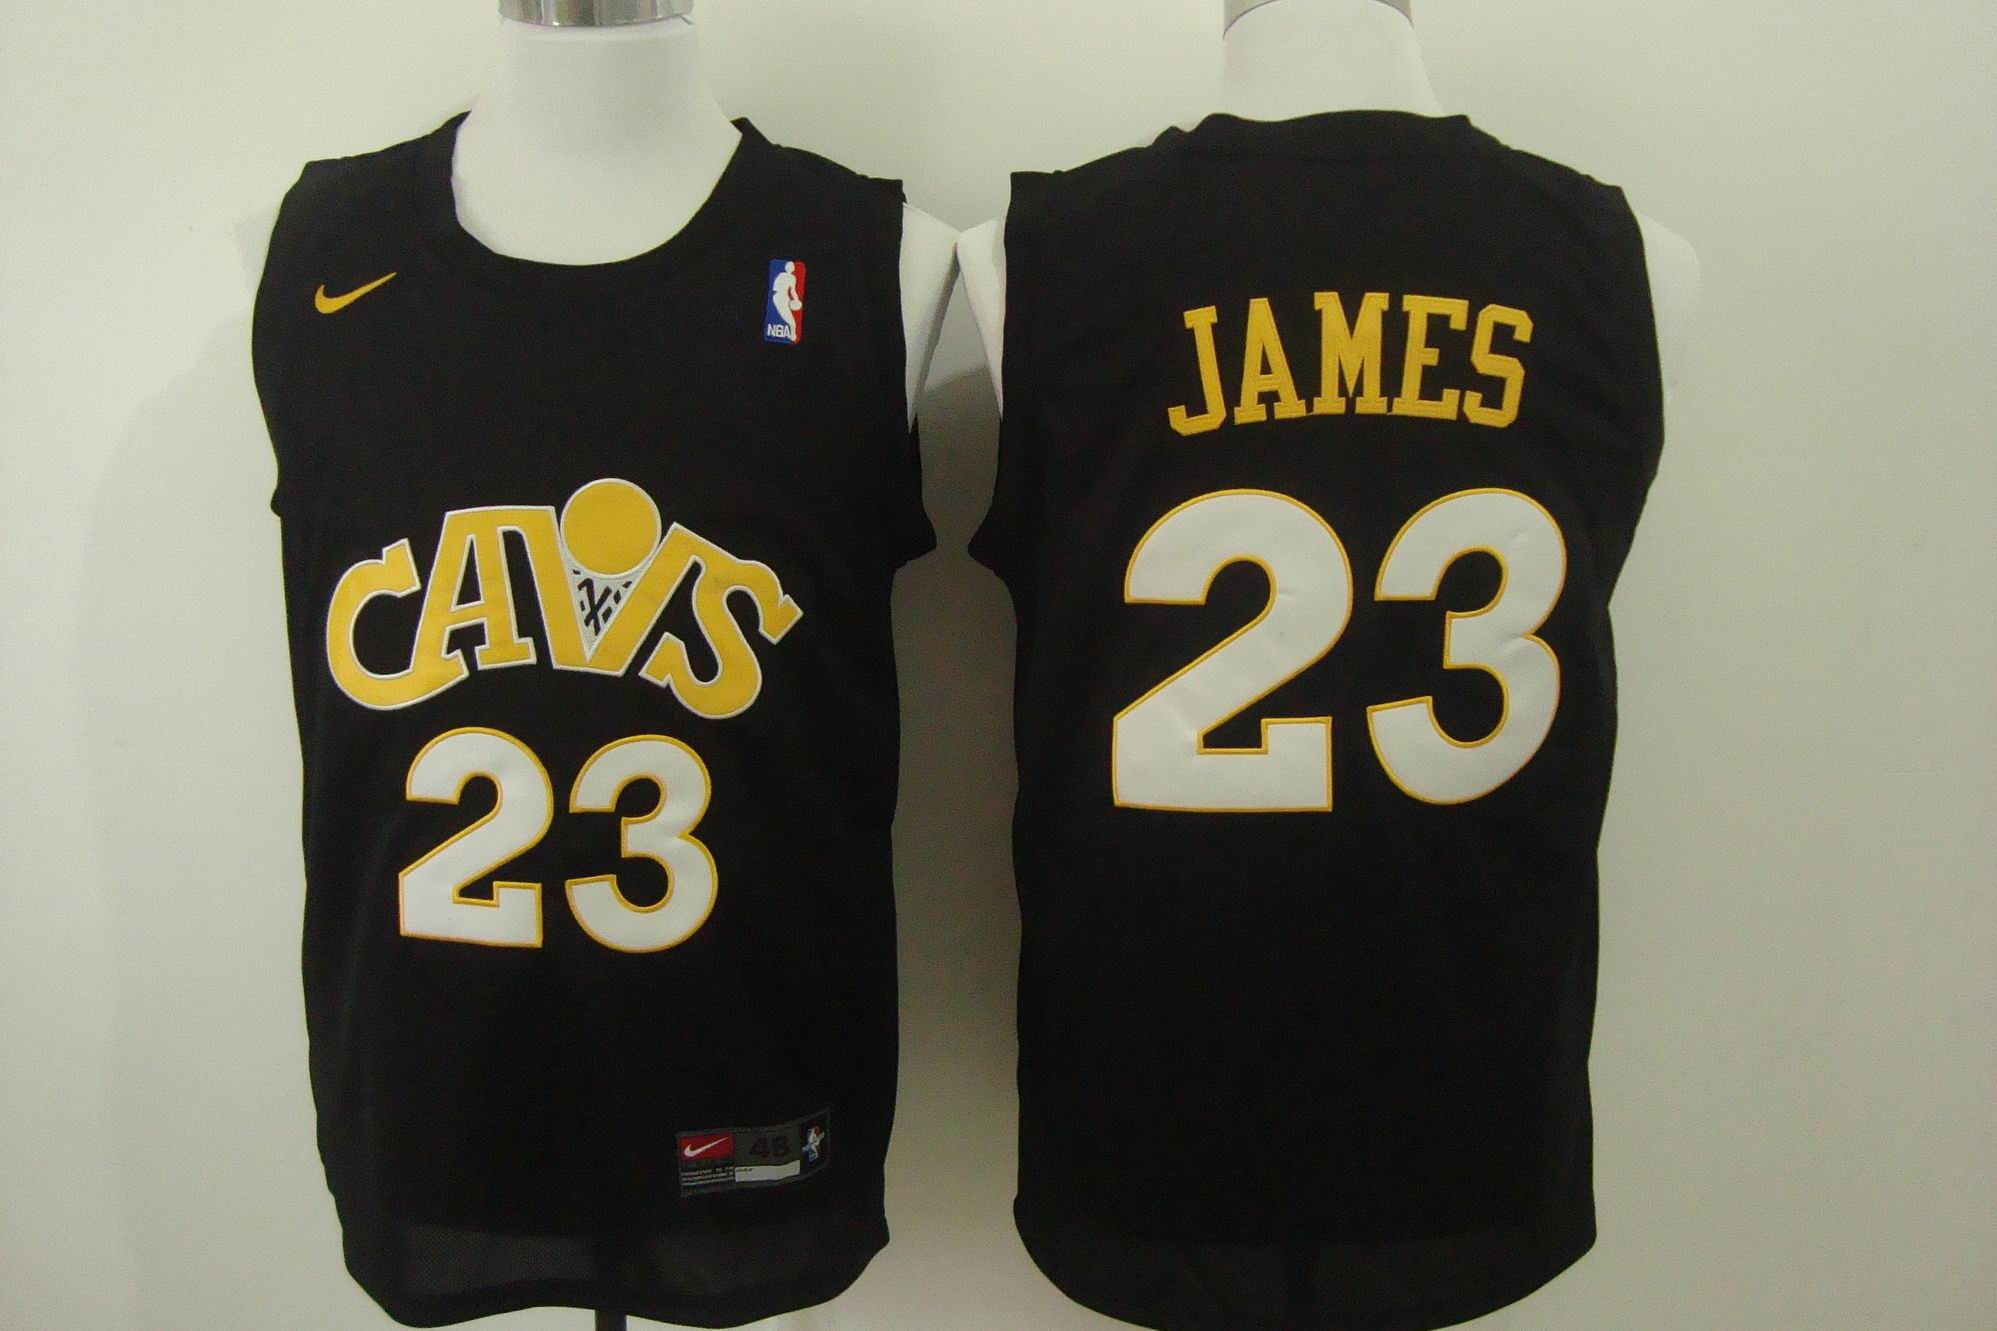 Men's Nike Cleveland Cavaliers #23 LeBron James Black Stitched NBA Jersey